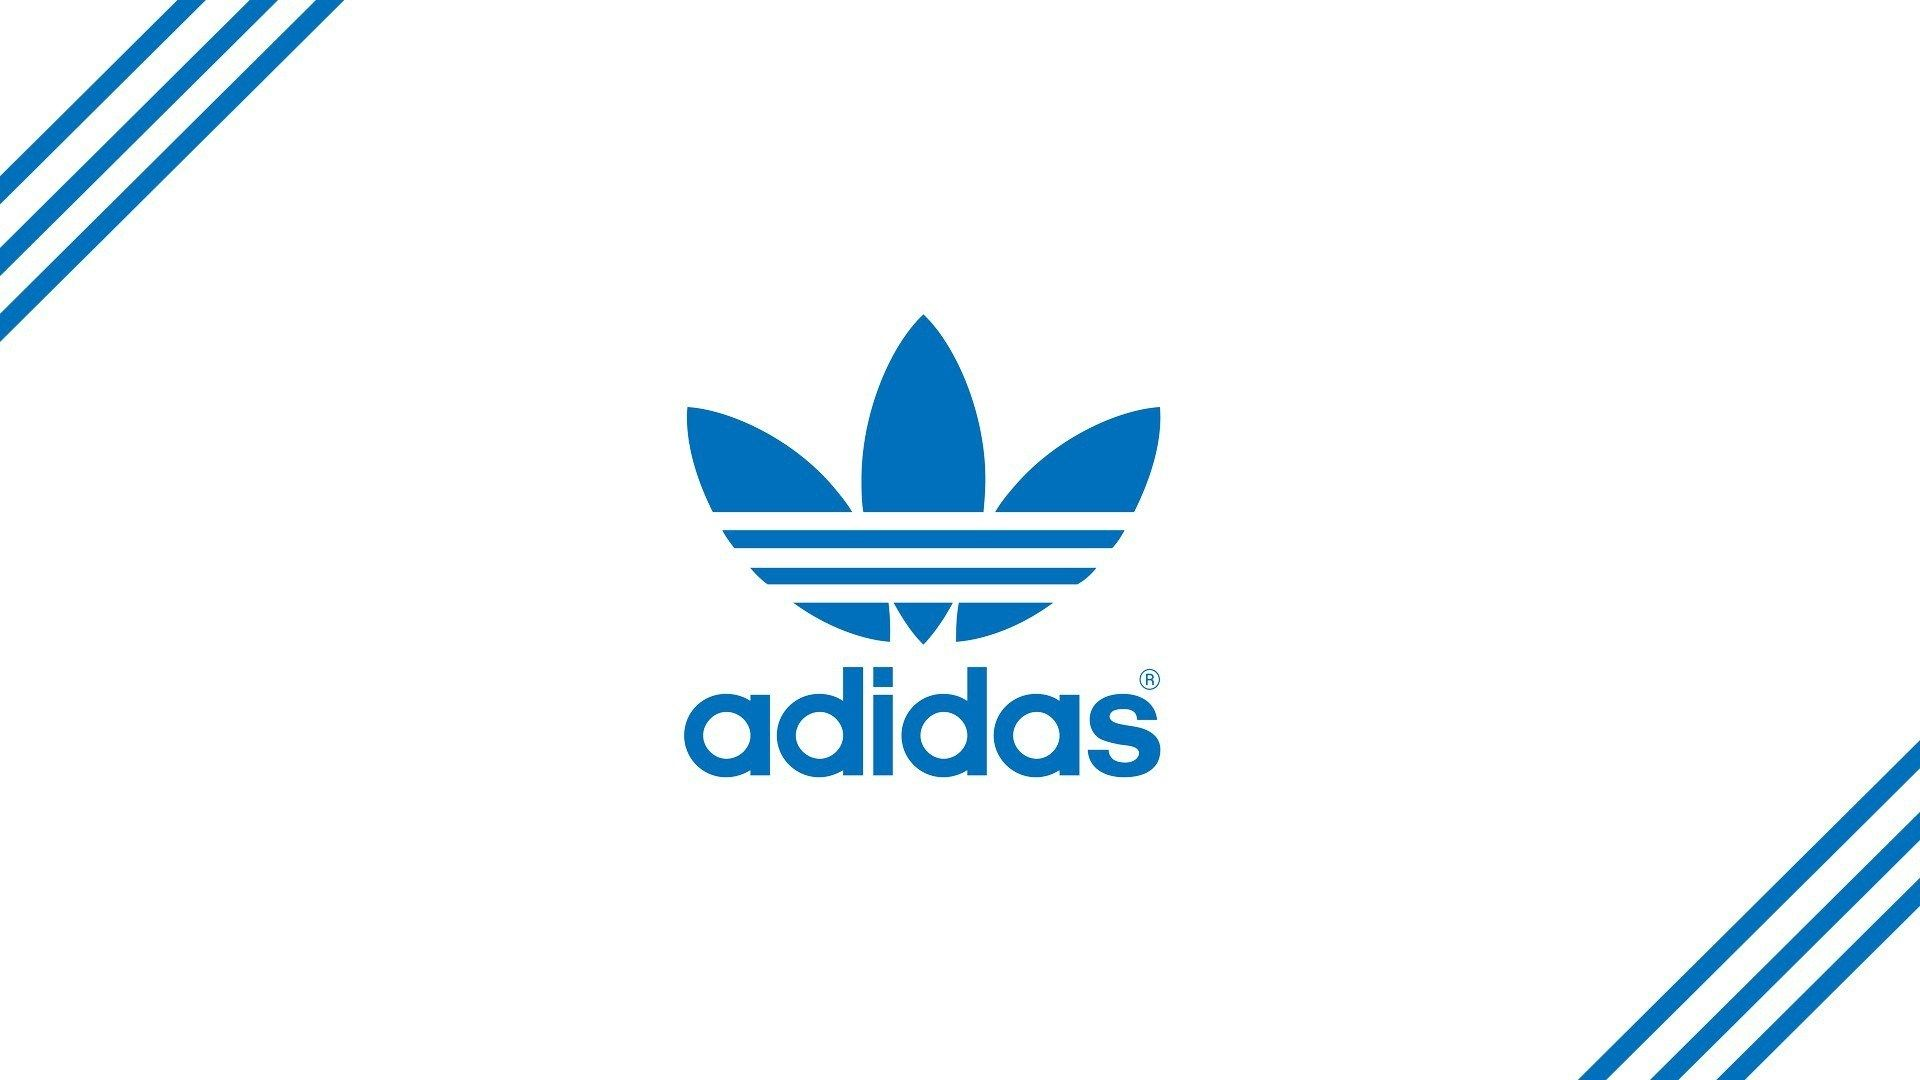 HD Widescreen Wallpapers - adidas picture - adidas category